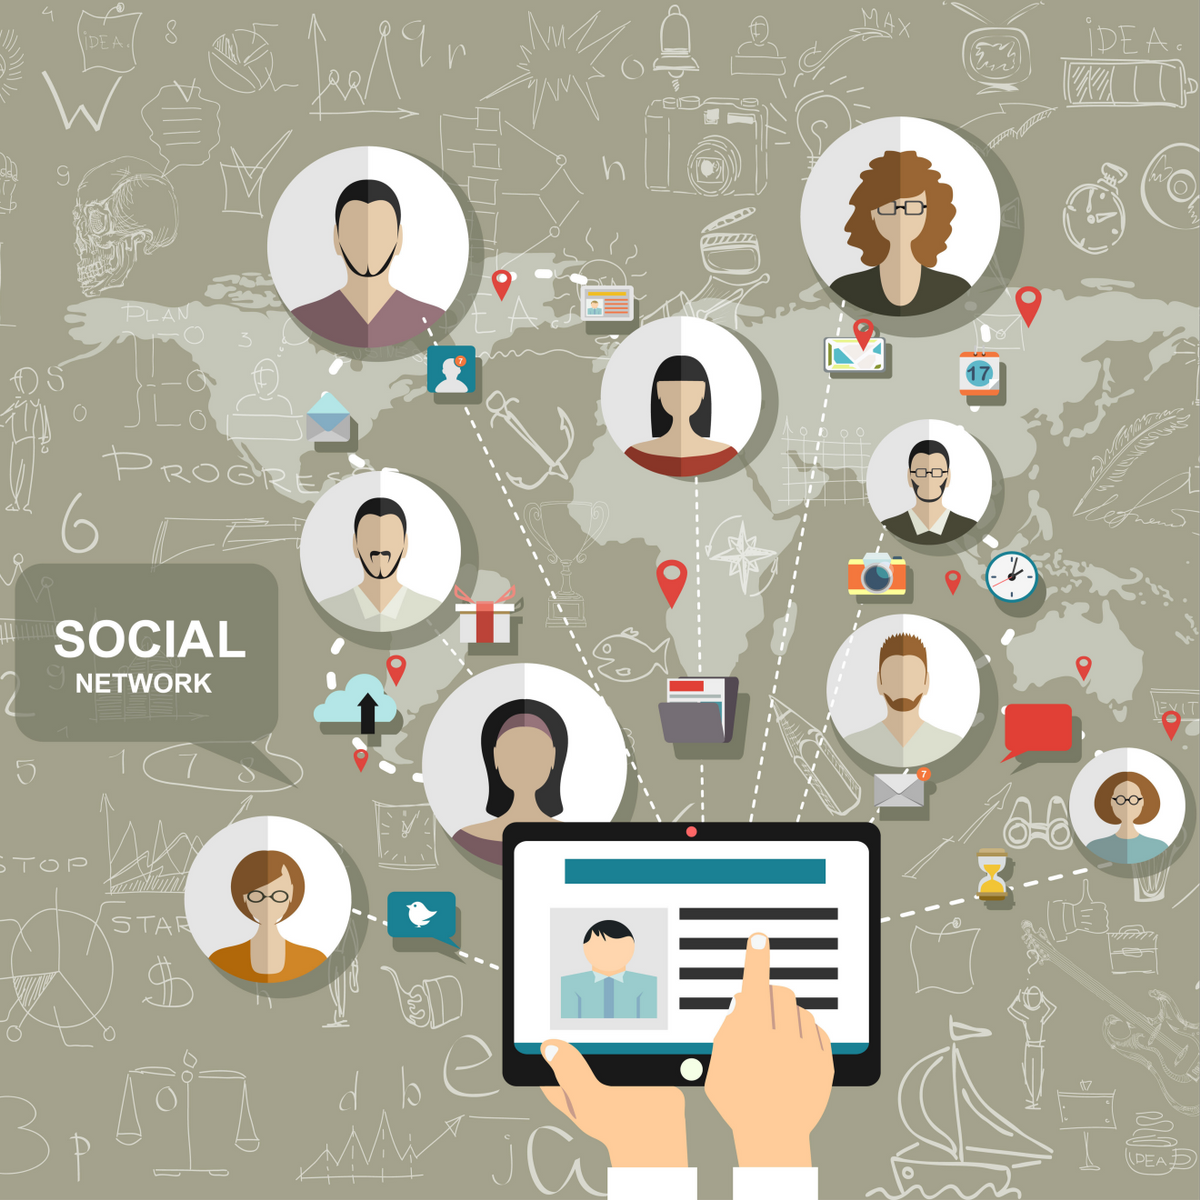 It's Time to Rethink Your Approach to Social Networking